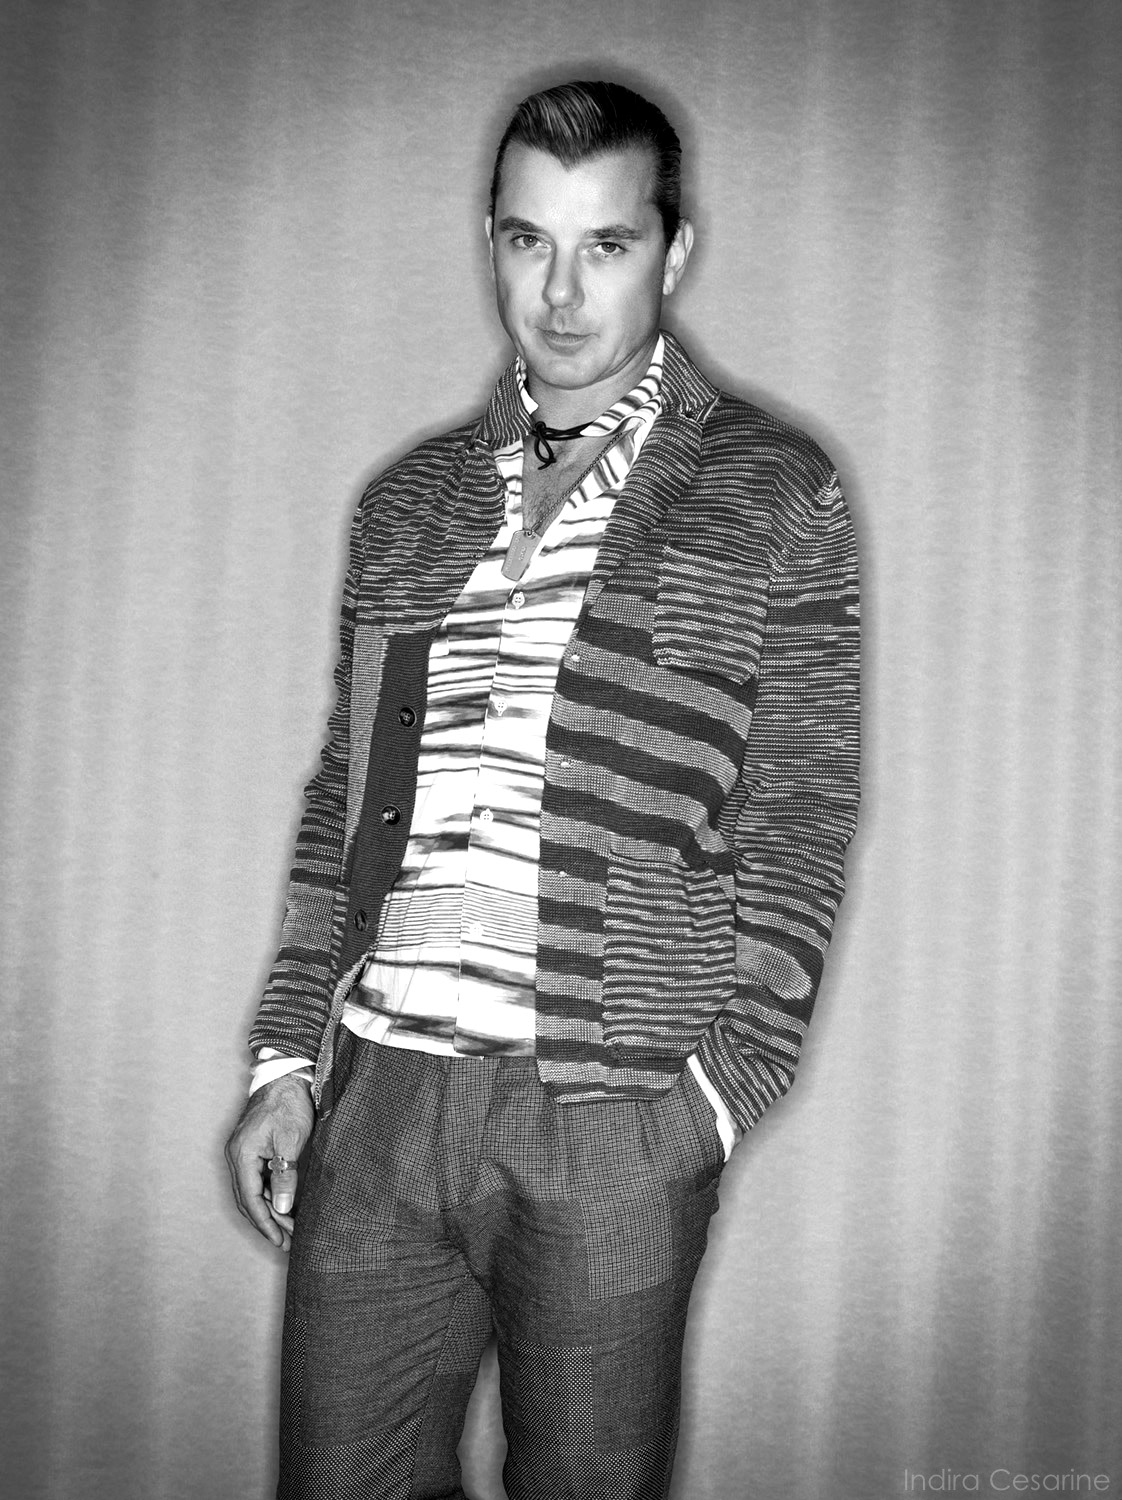 Gavin-Rossdale-Photography-by-Indira-Cesarine-006-bw.jpg